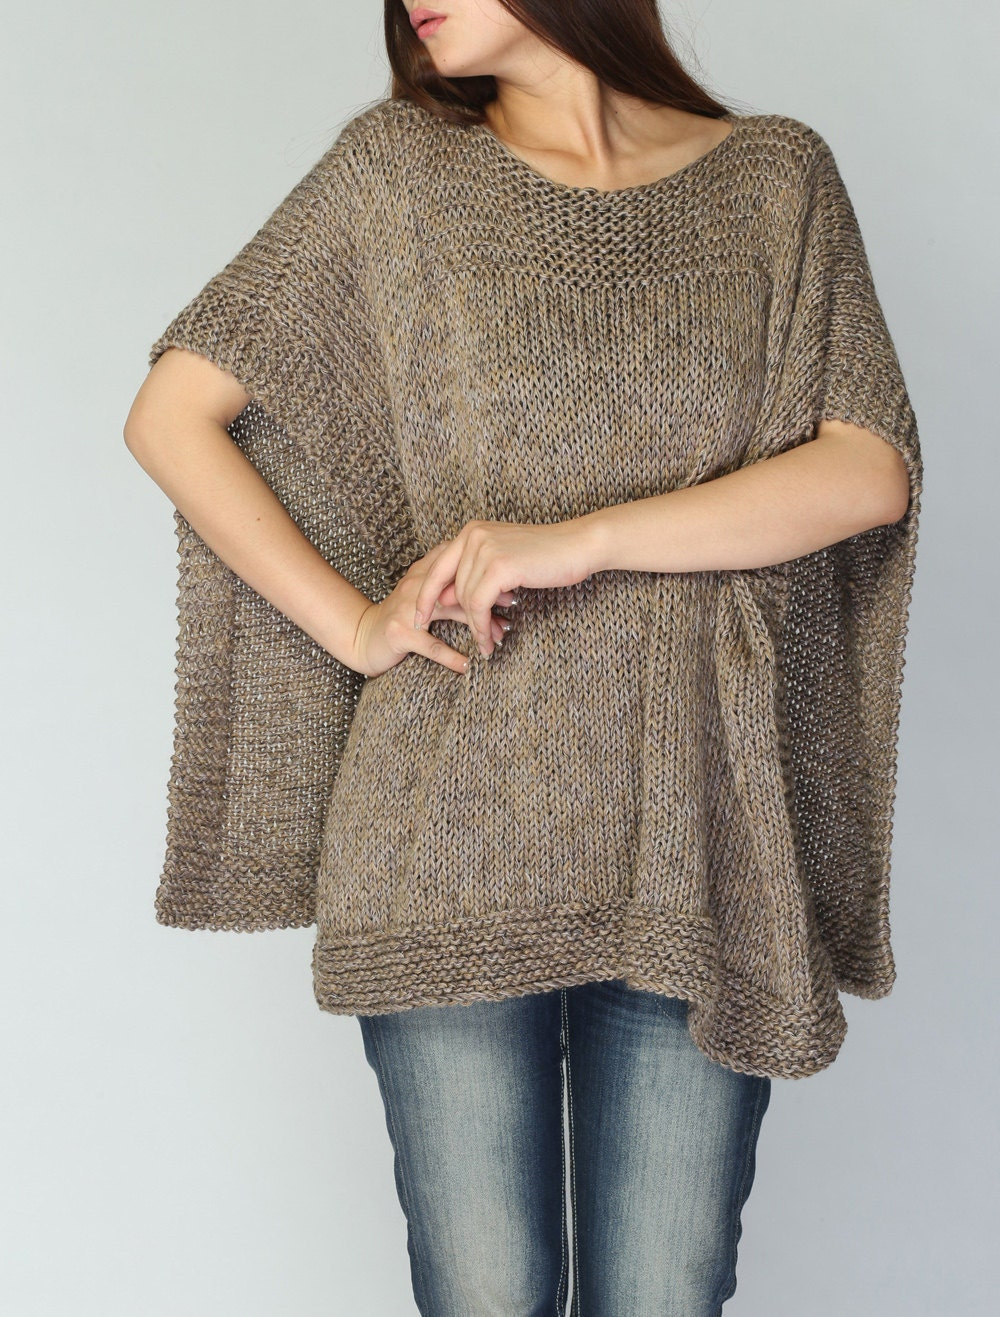 Vogue Knitting Cape Pattern : Hand knit woaman Poncho/ capelet eco cotton poncho dark wheat